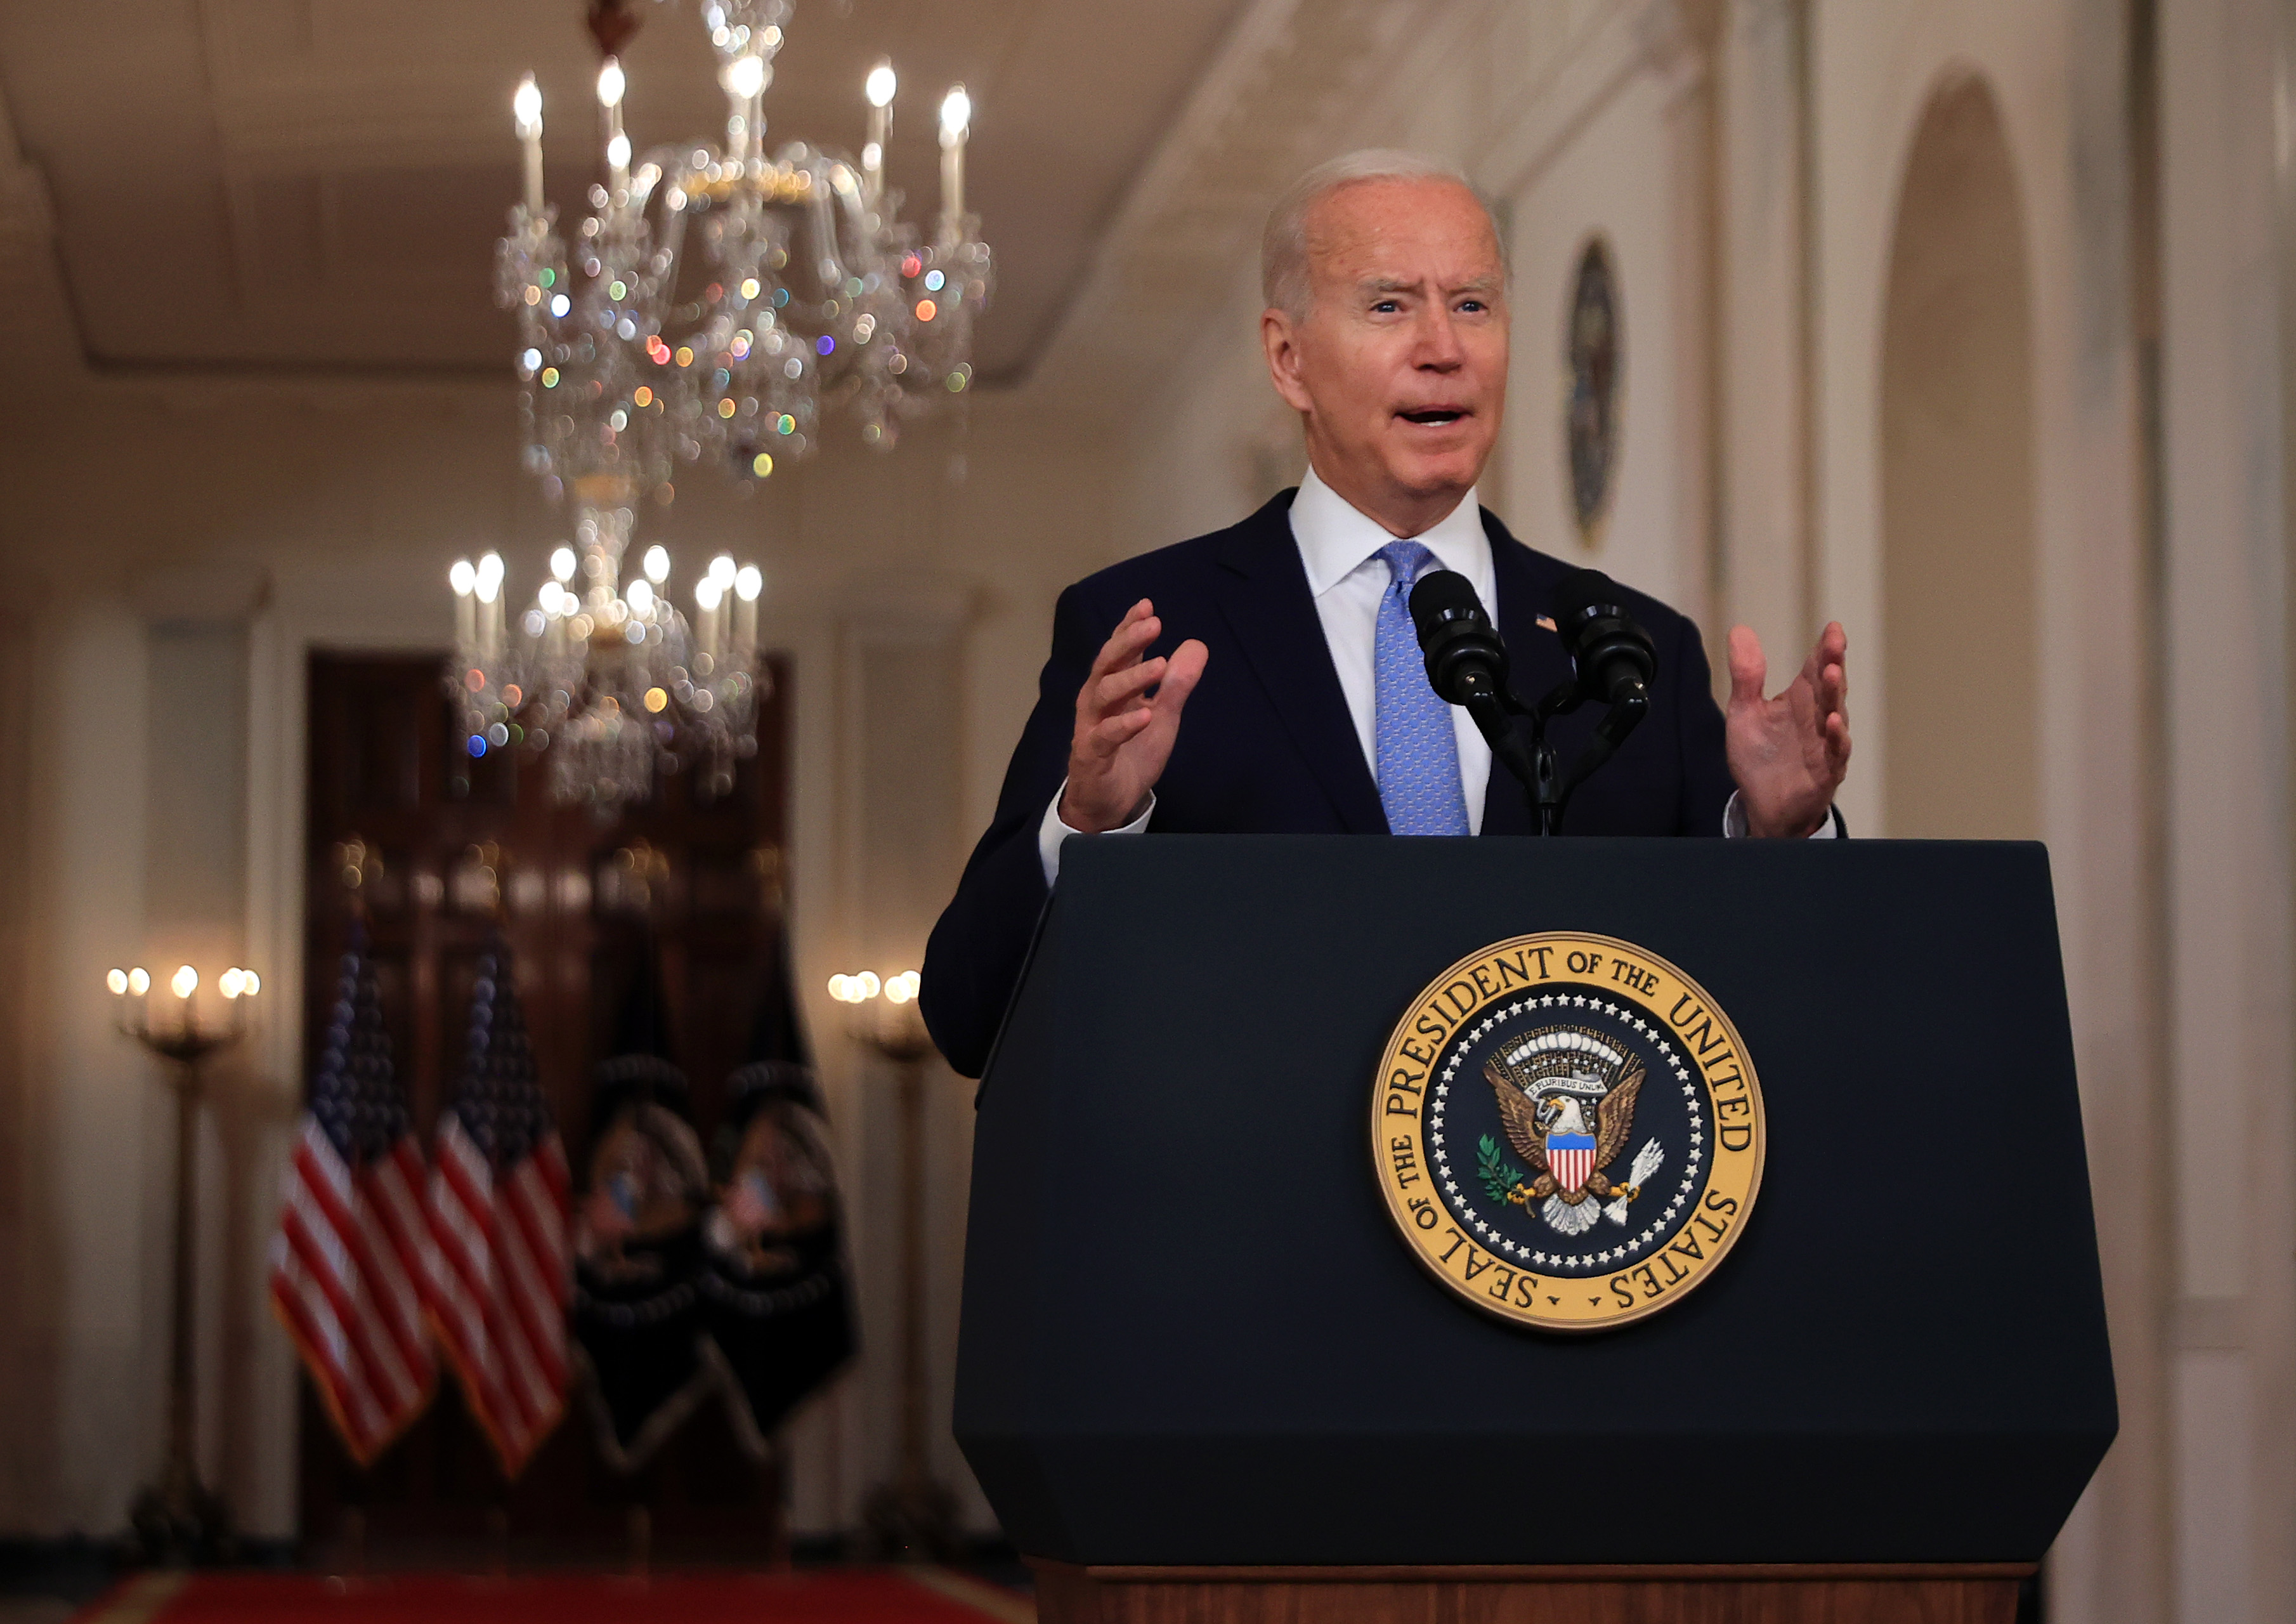 Joe Biden delivers remarks on the end of the war in Afghanistan in the State Dining Room at the White House on August 31, 2021 in Washington, D.C. (Photo by Chip Somodevilla/Getty Images)